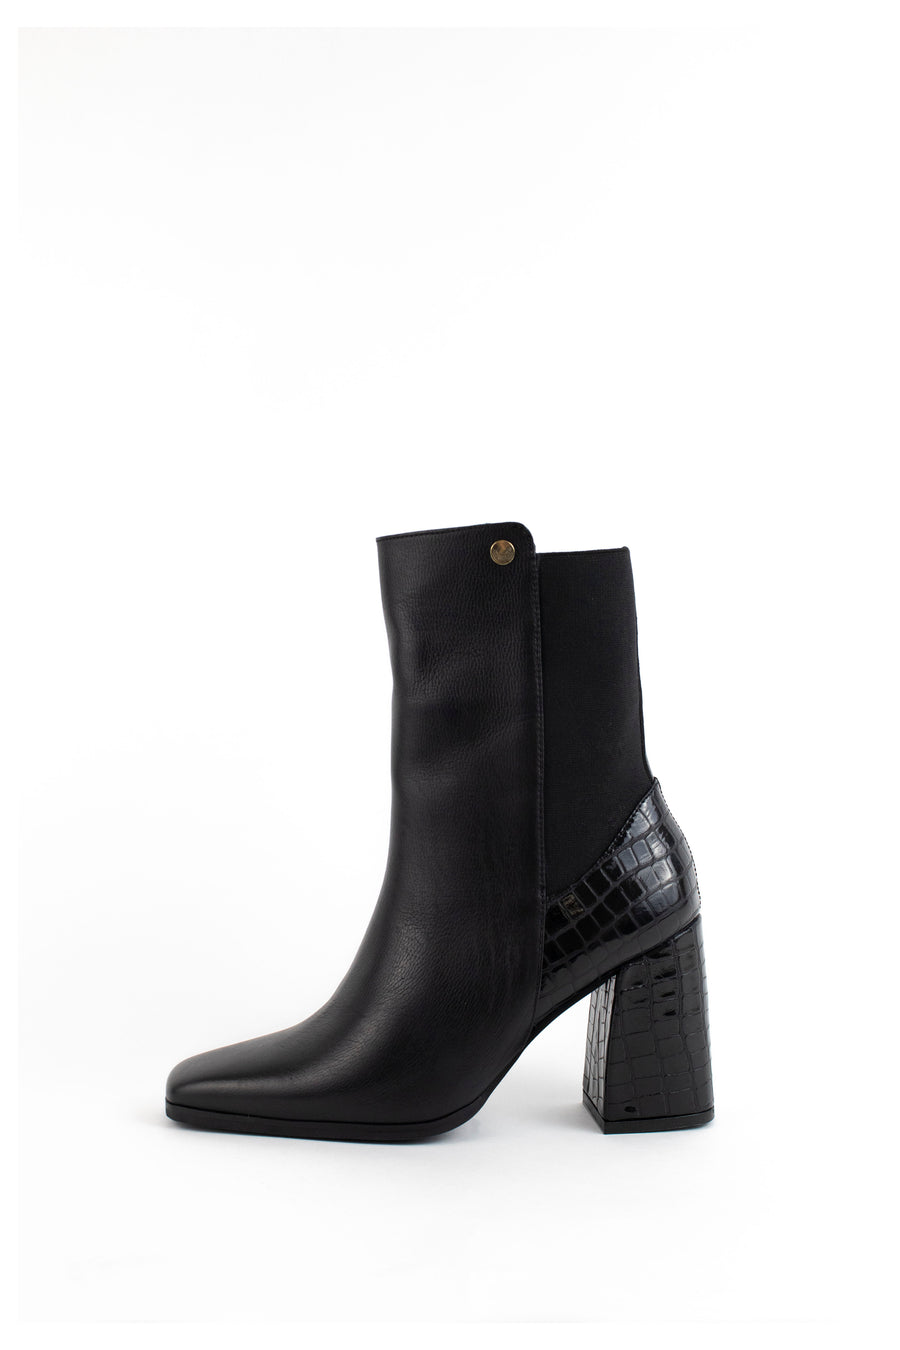 Florence booties with higher ankles in black leather